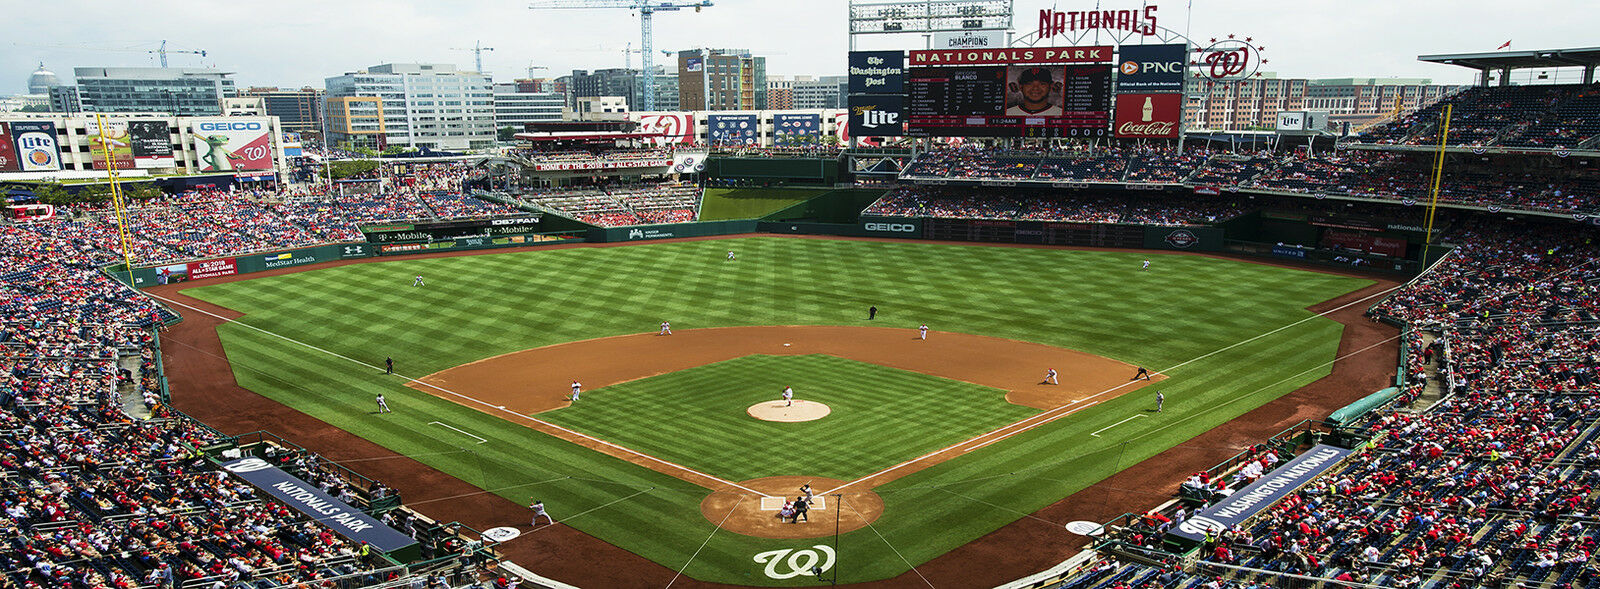 New York Yankees at Washington Nationals Tickets (Rescheduled from May 16th)